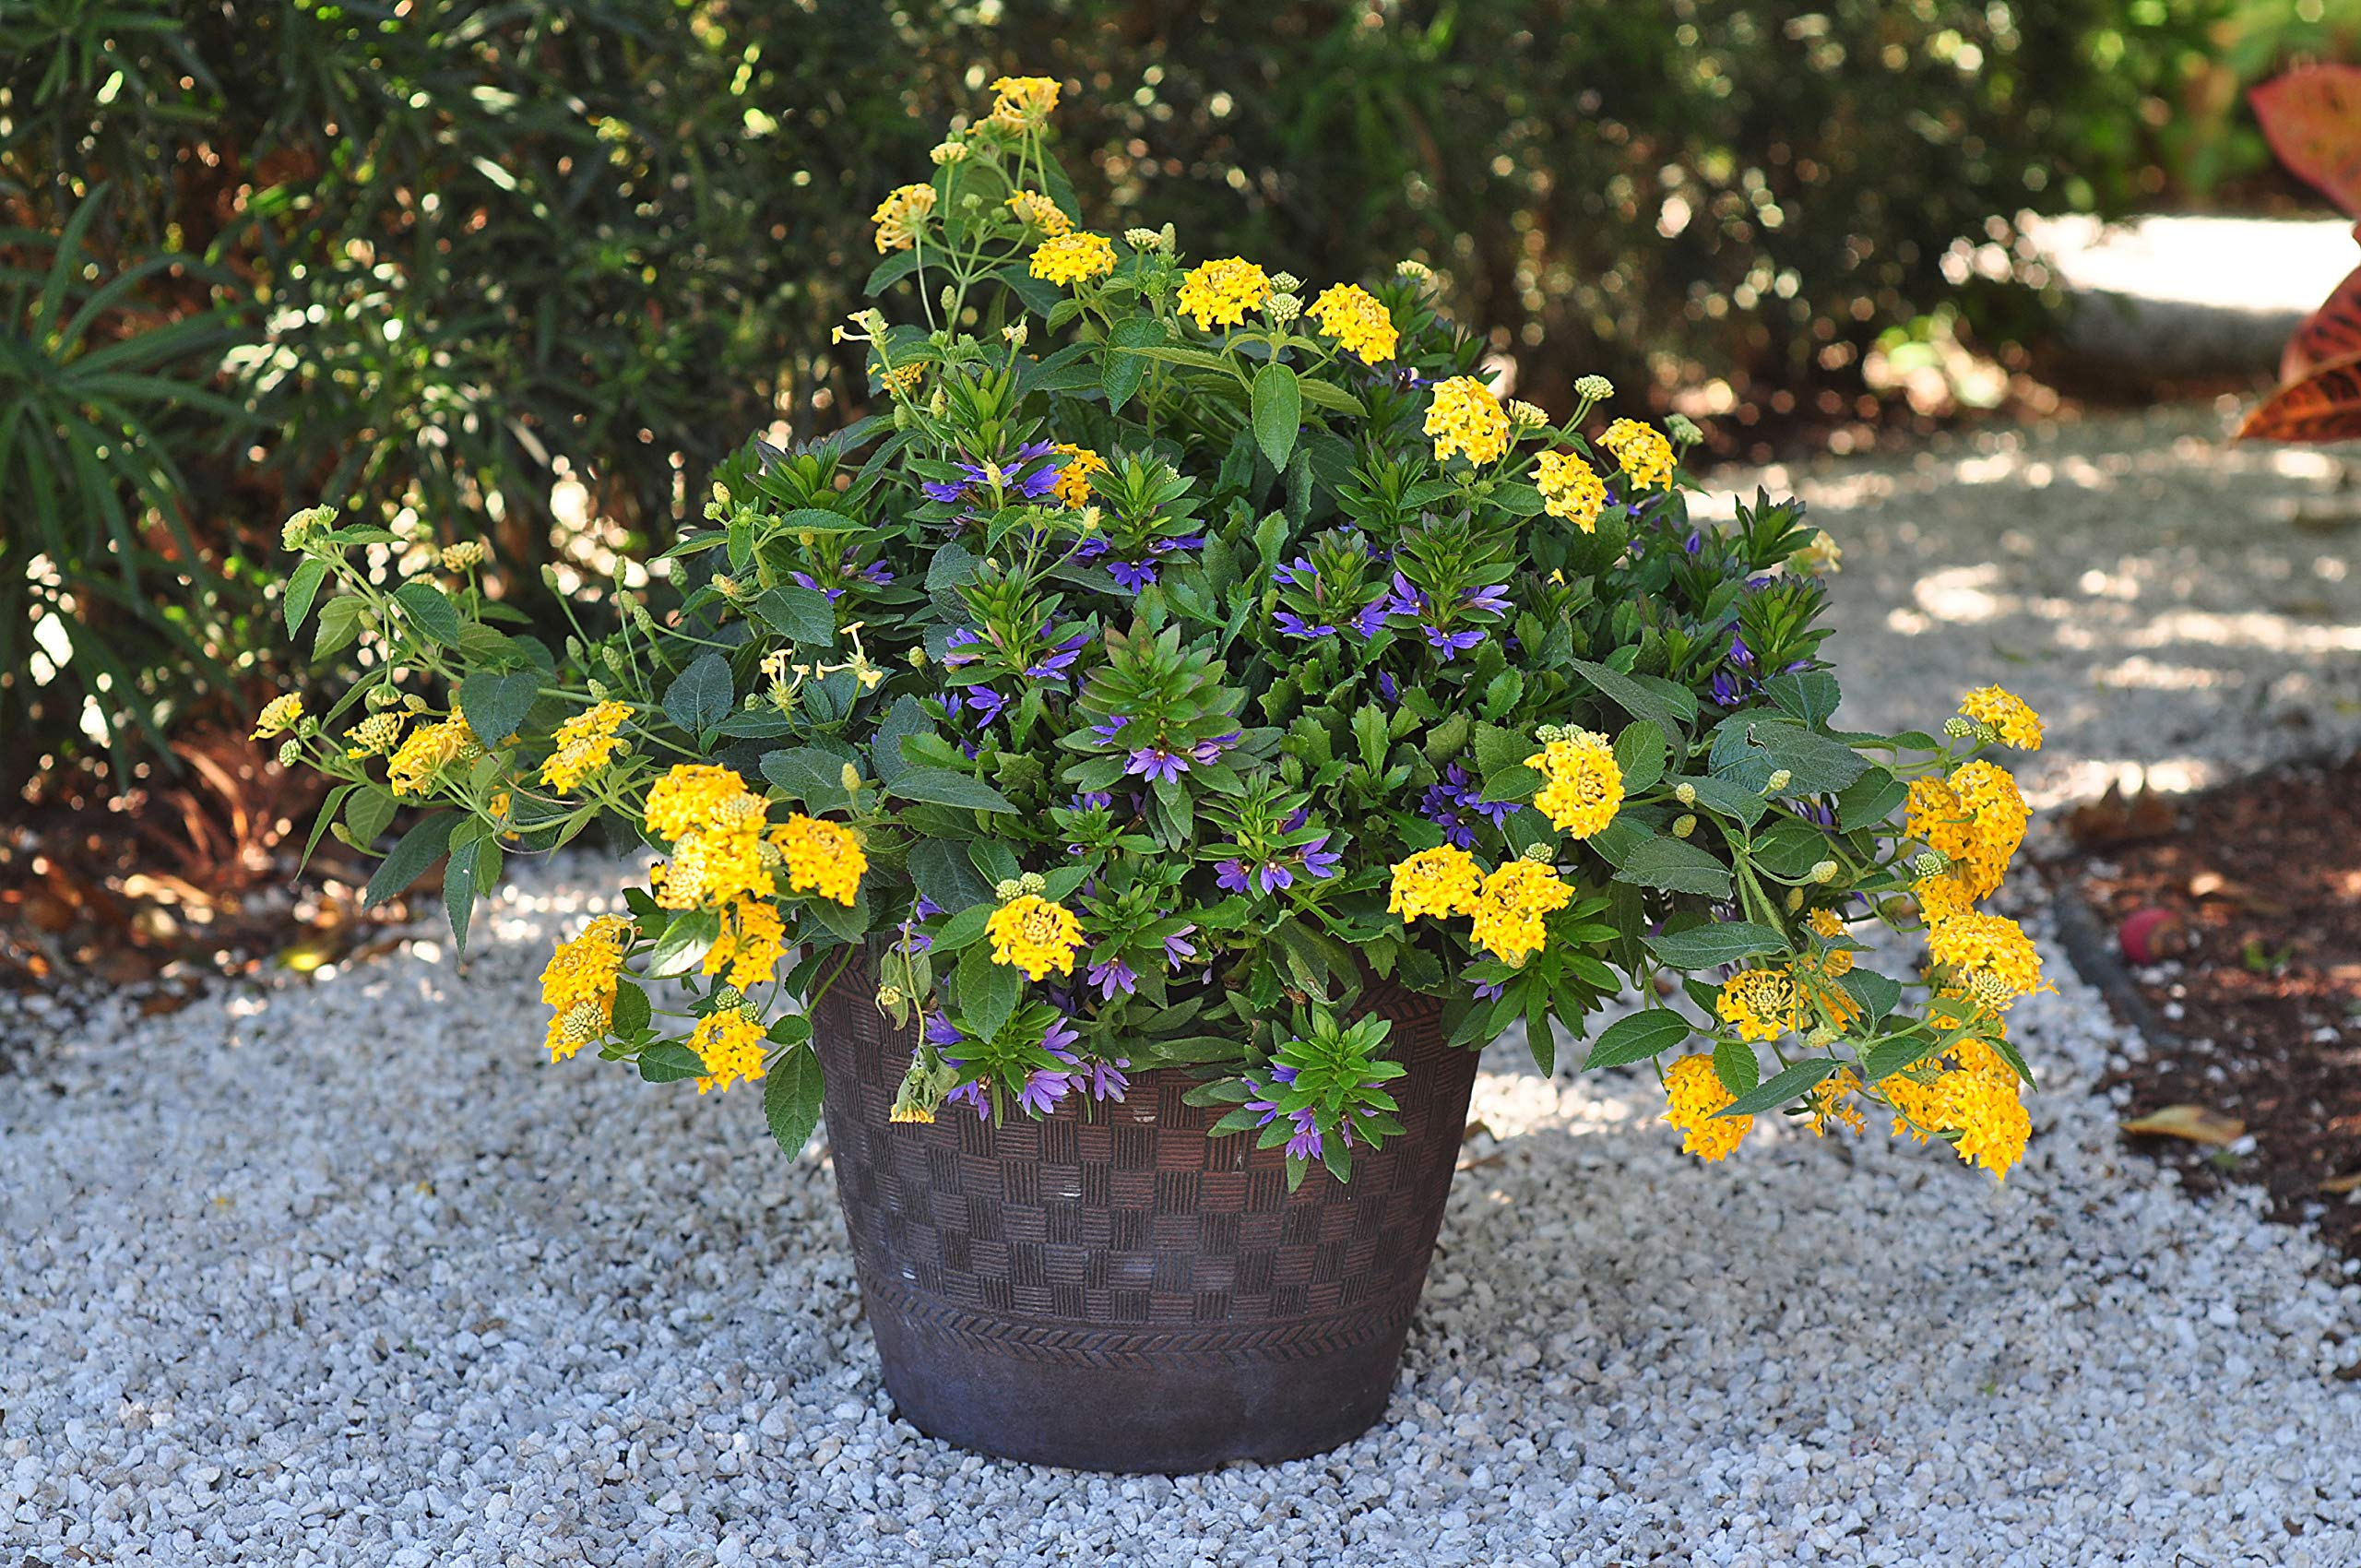 Costa Farms Live Premium Lantana Plant 1.00 qt Grower Pot, 8-Pack Yellow by Costa Farms (Image #4)